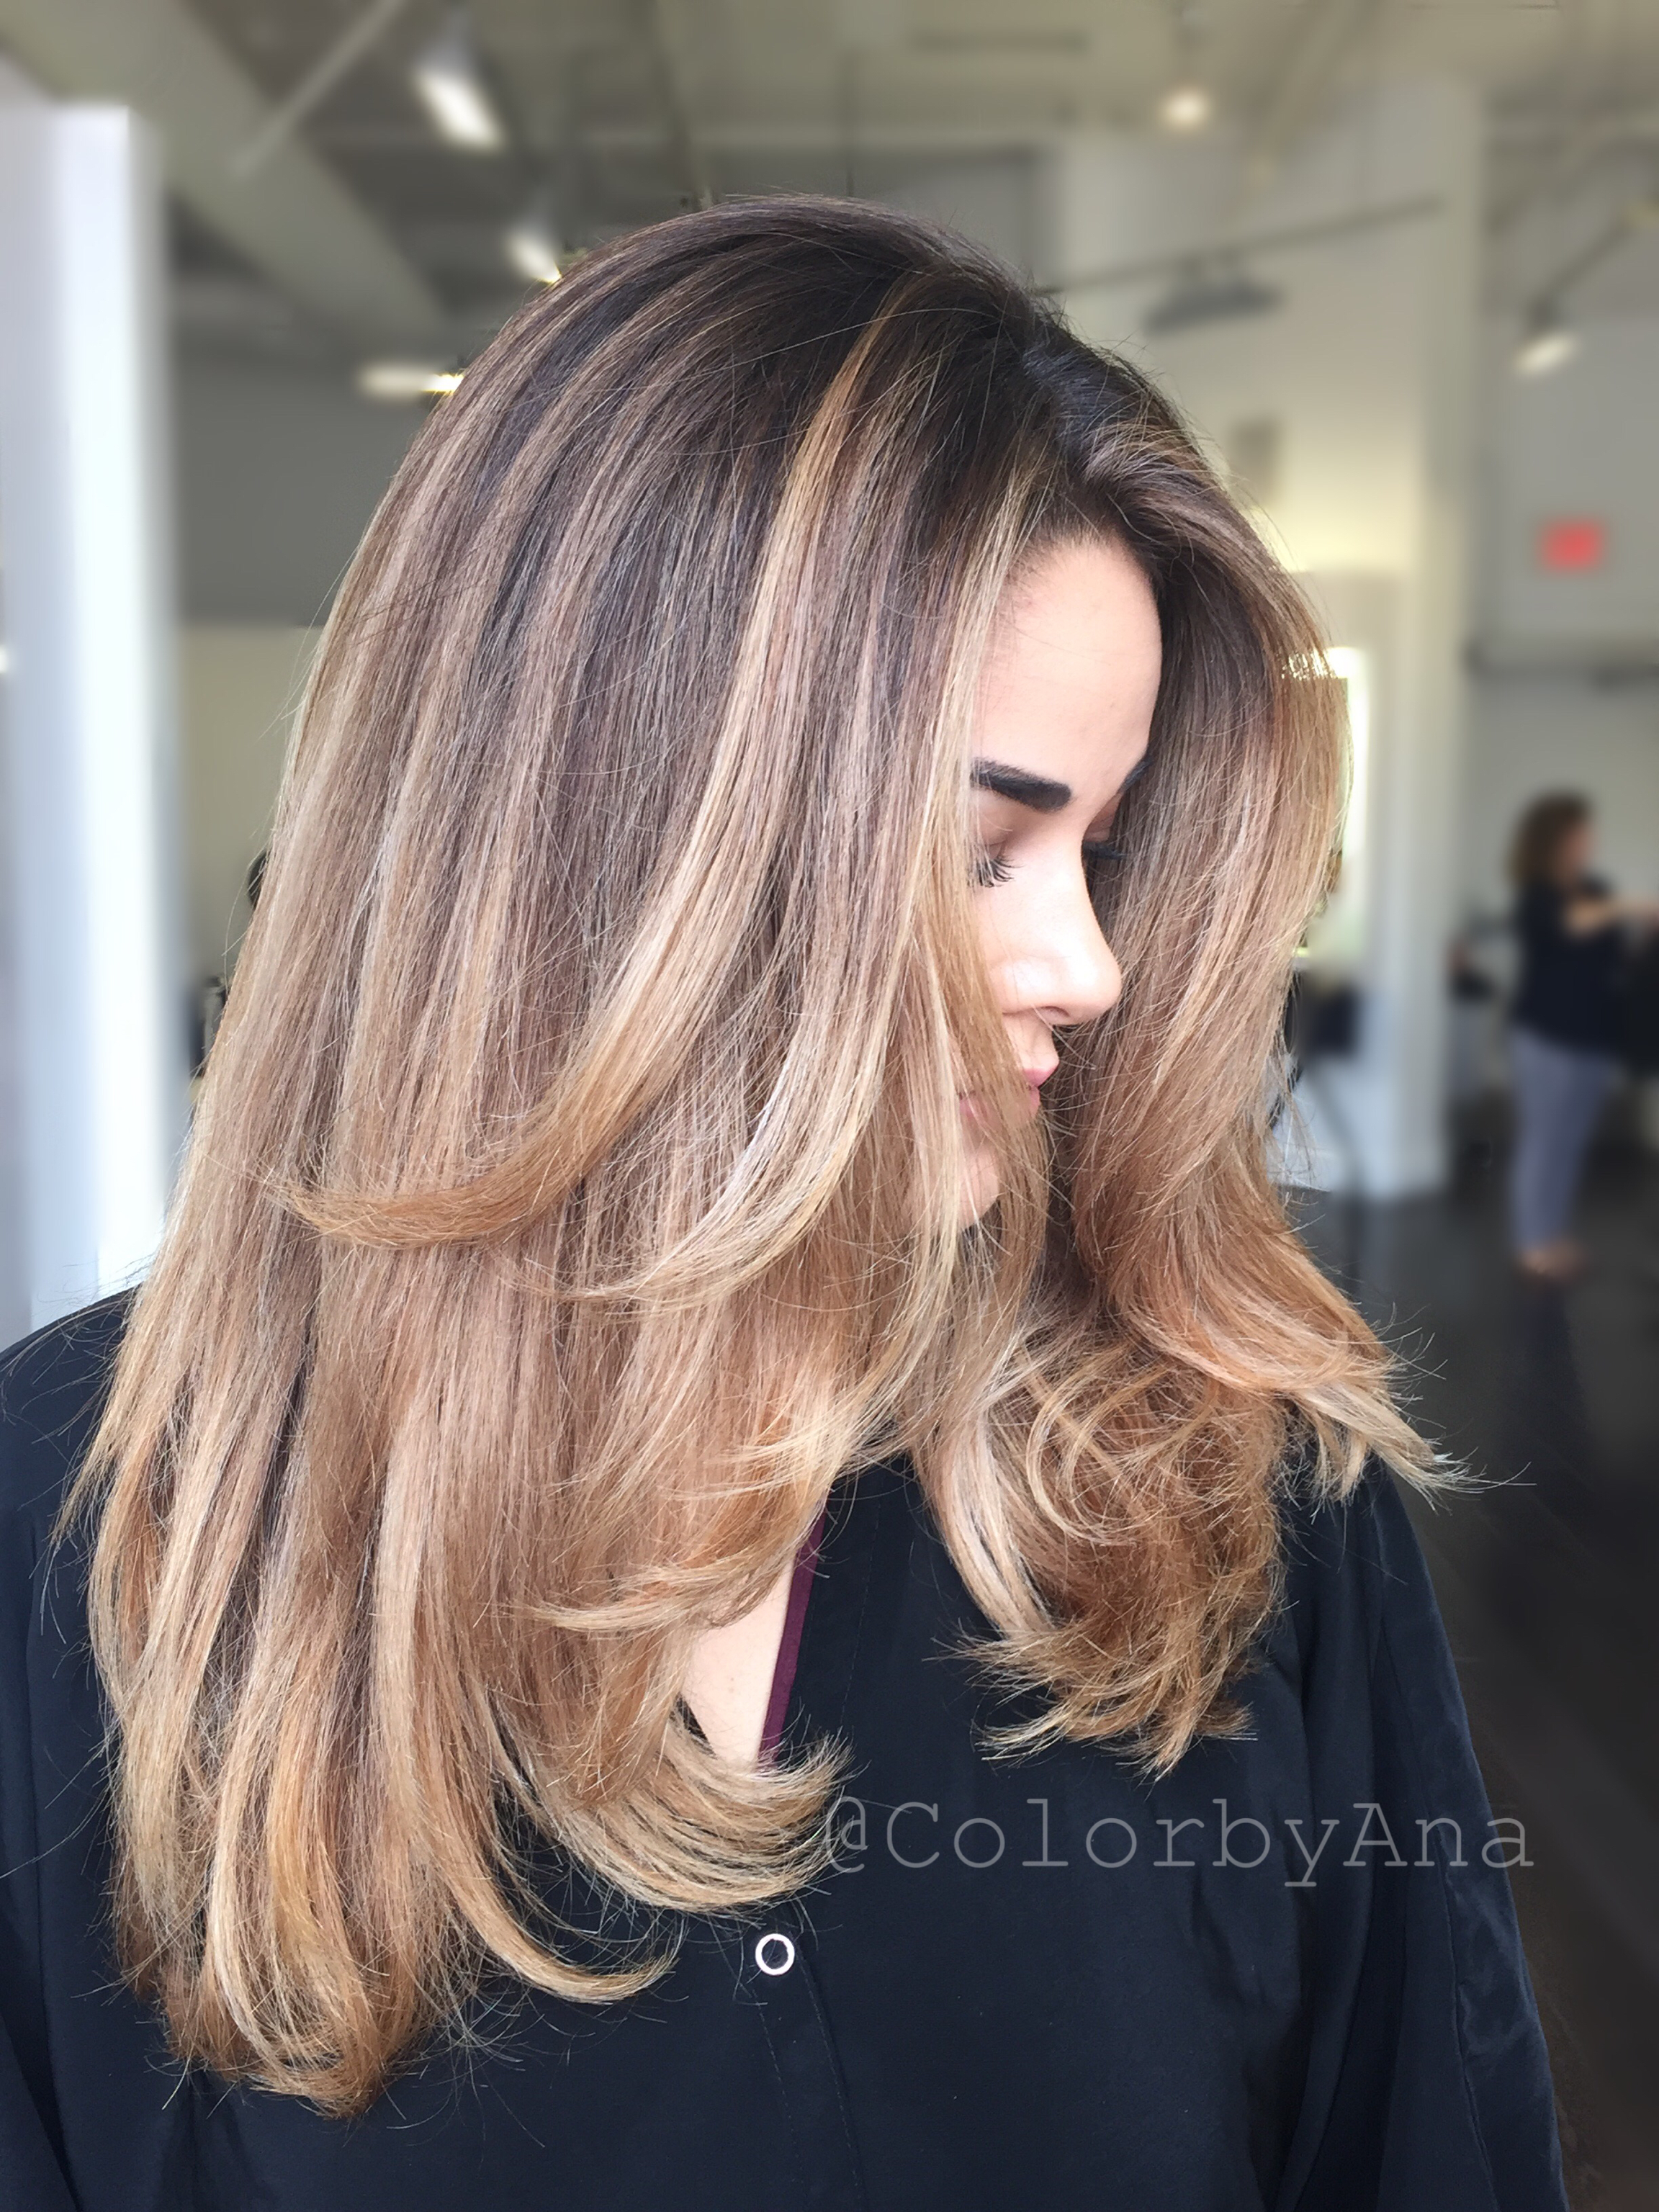 Color By Colorbyana Blonde Balayage Cristophe Salon California Beauty Style Color Curls Longhair Hair Haircolor Boliage Hair Balayage Hair Blonde Balayage